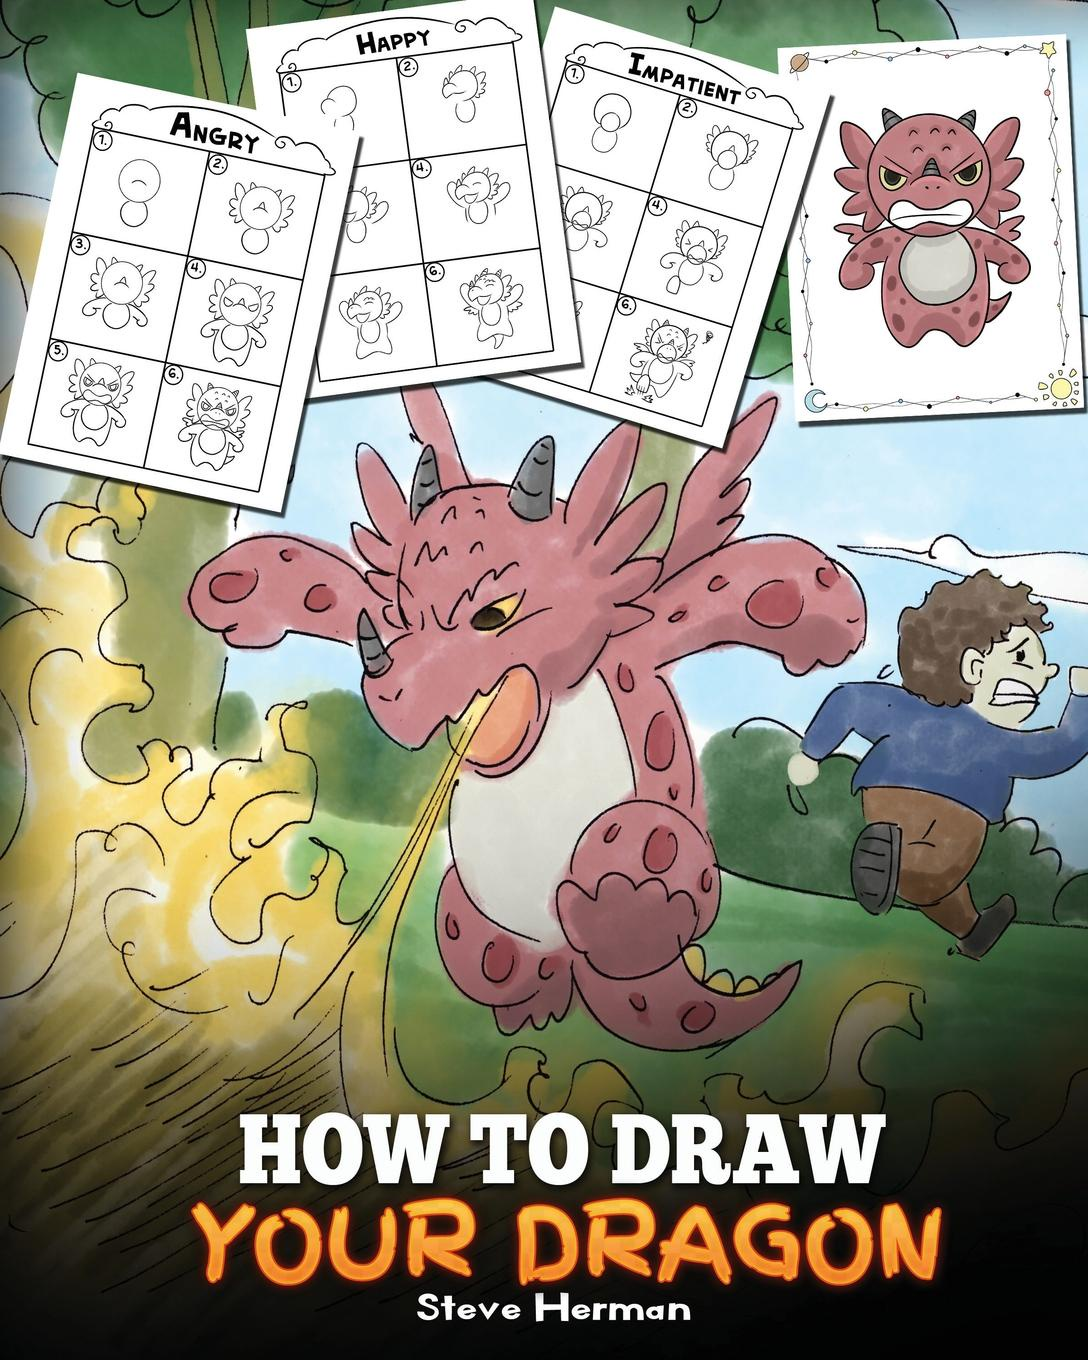 Steve Herman How to Draw Your Dragon. Learn How to Draw Cute Dragons with Different Emotions. A Fun and Easy Step by Step Guide To Draw Dragons for Kids. printio draw more red